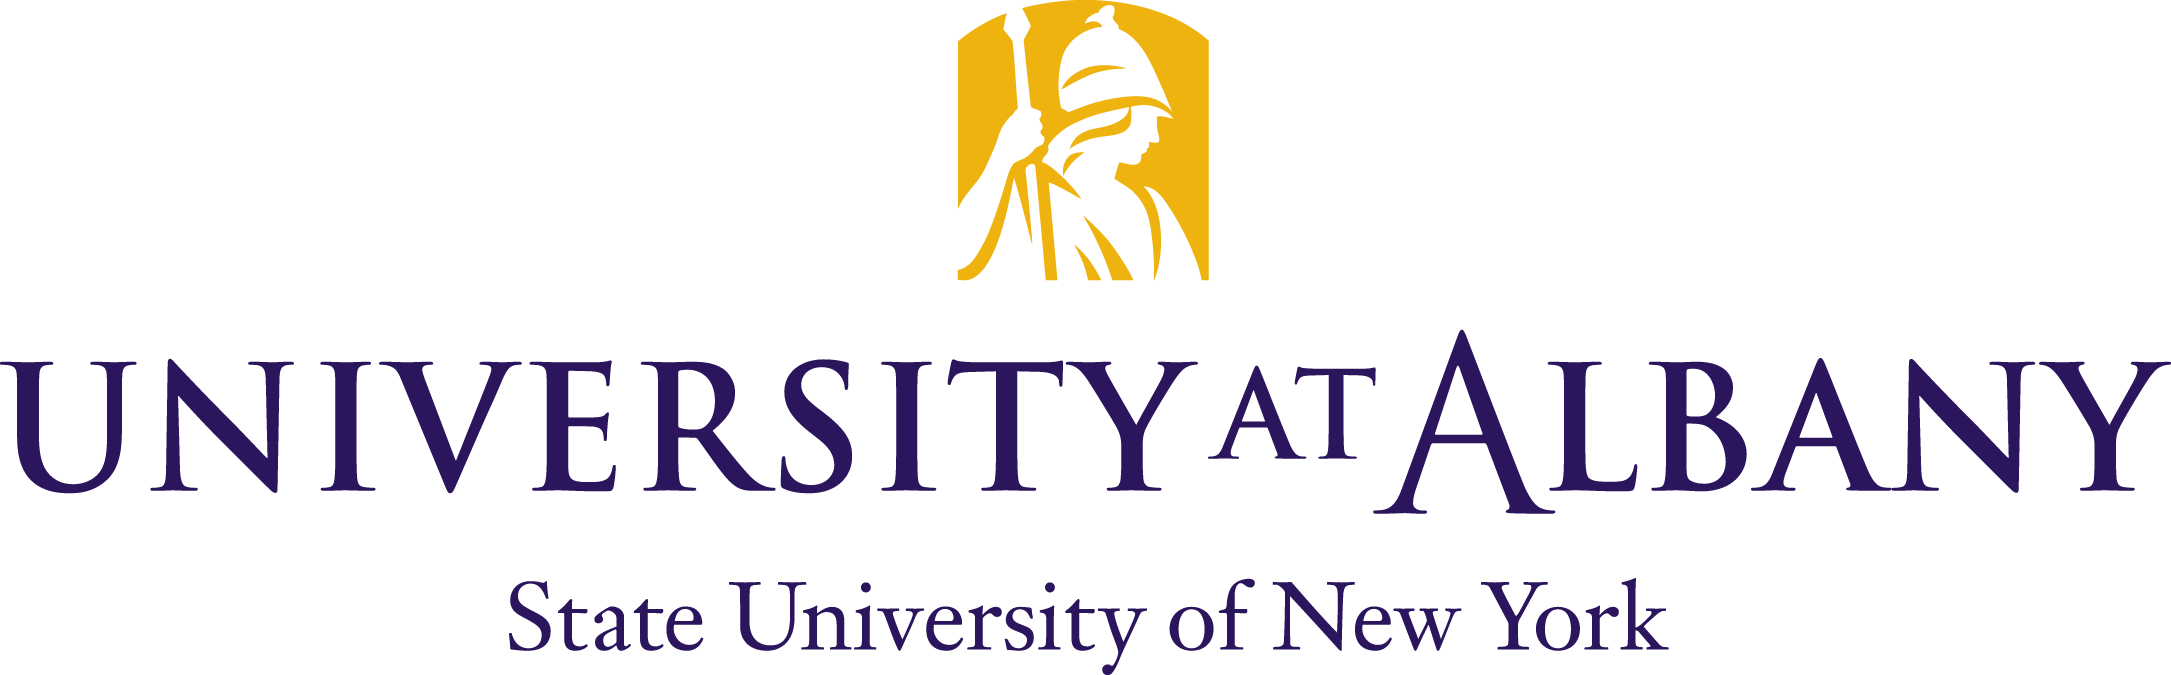 albany state university logo | Logospike.com: Famous and Free ... picture transparent library